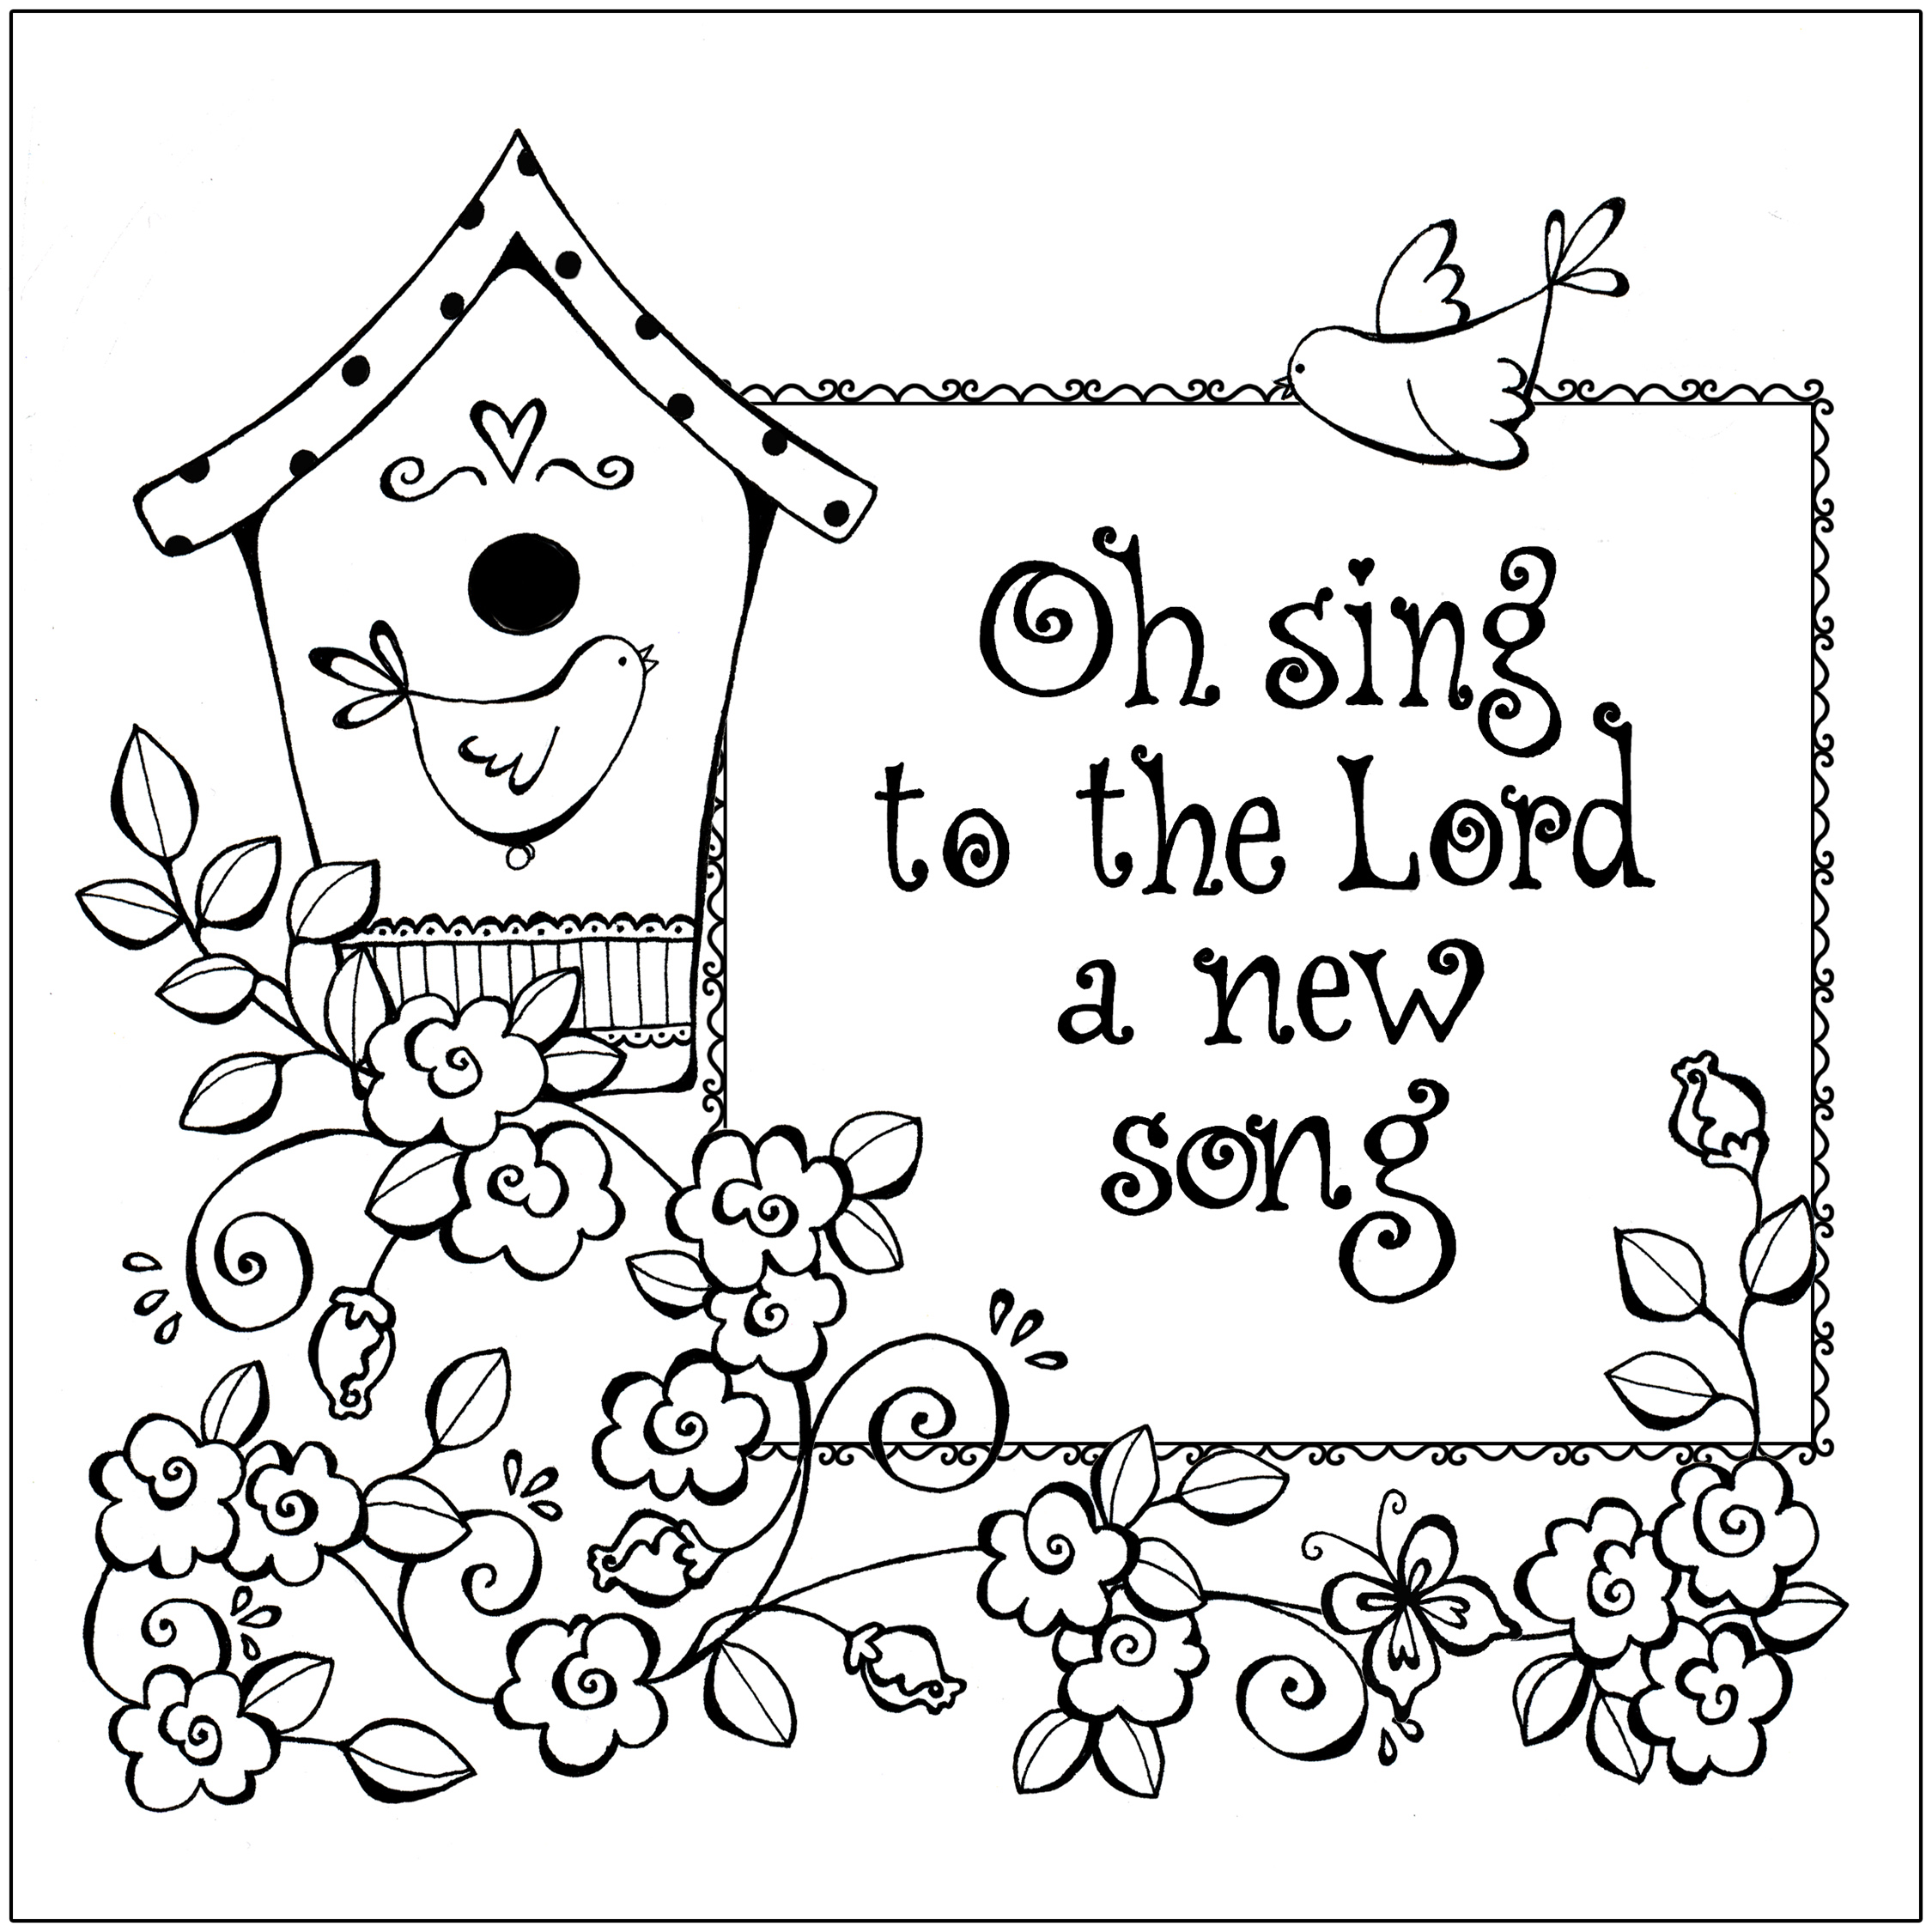 Picture for coloring printable - Christian Coloring Page Printable Images